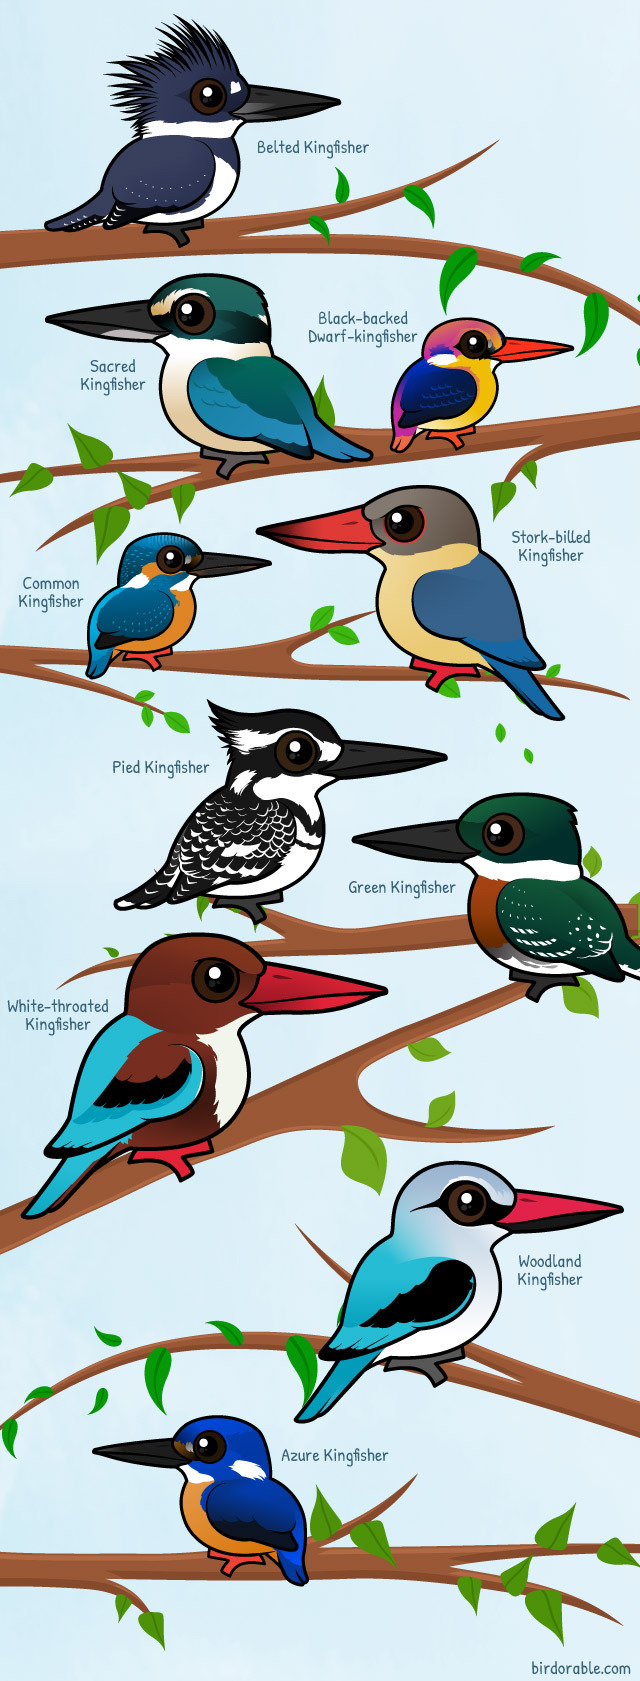 Woodland Kingfisher clipart #12, Download drawings